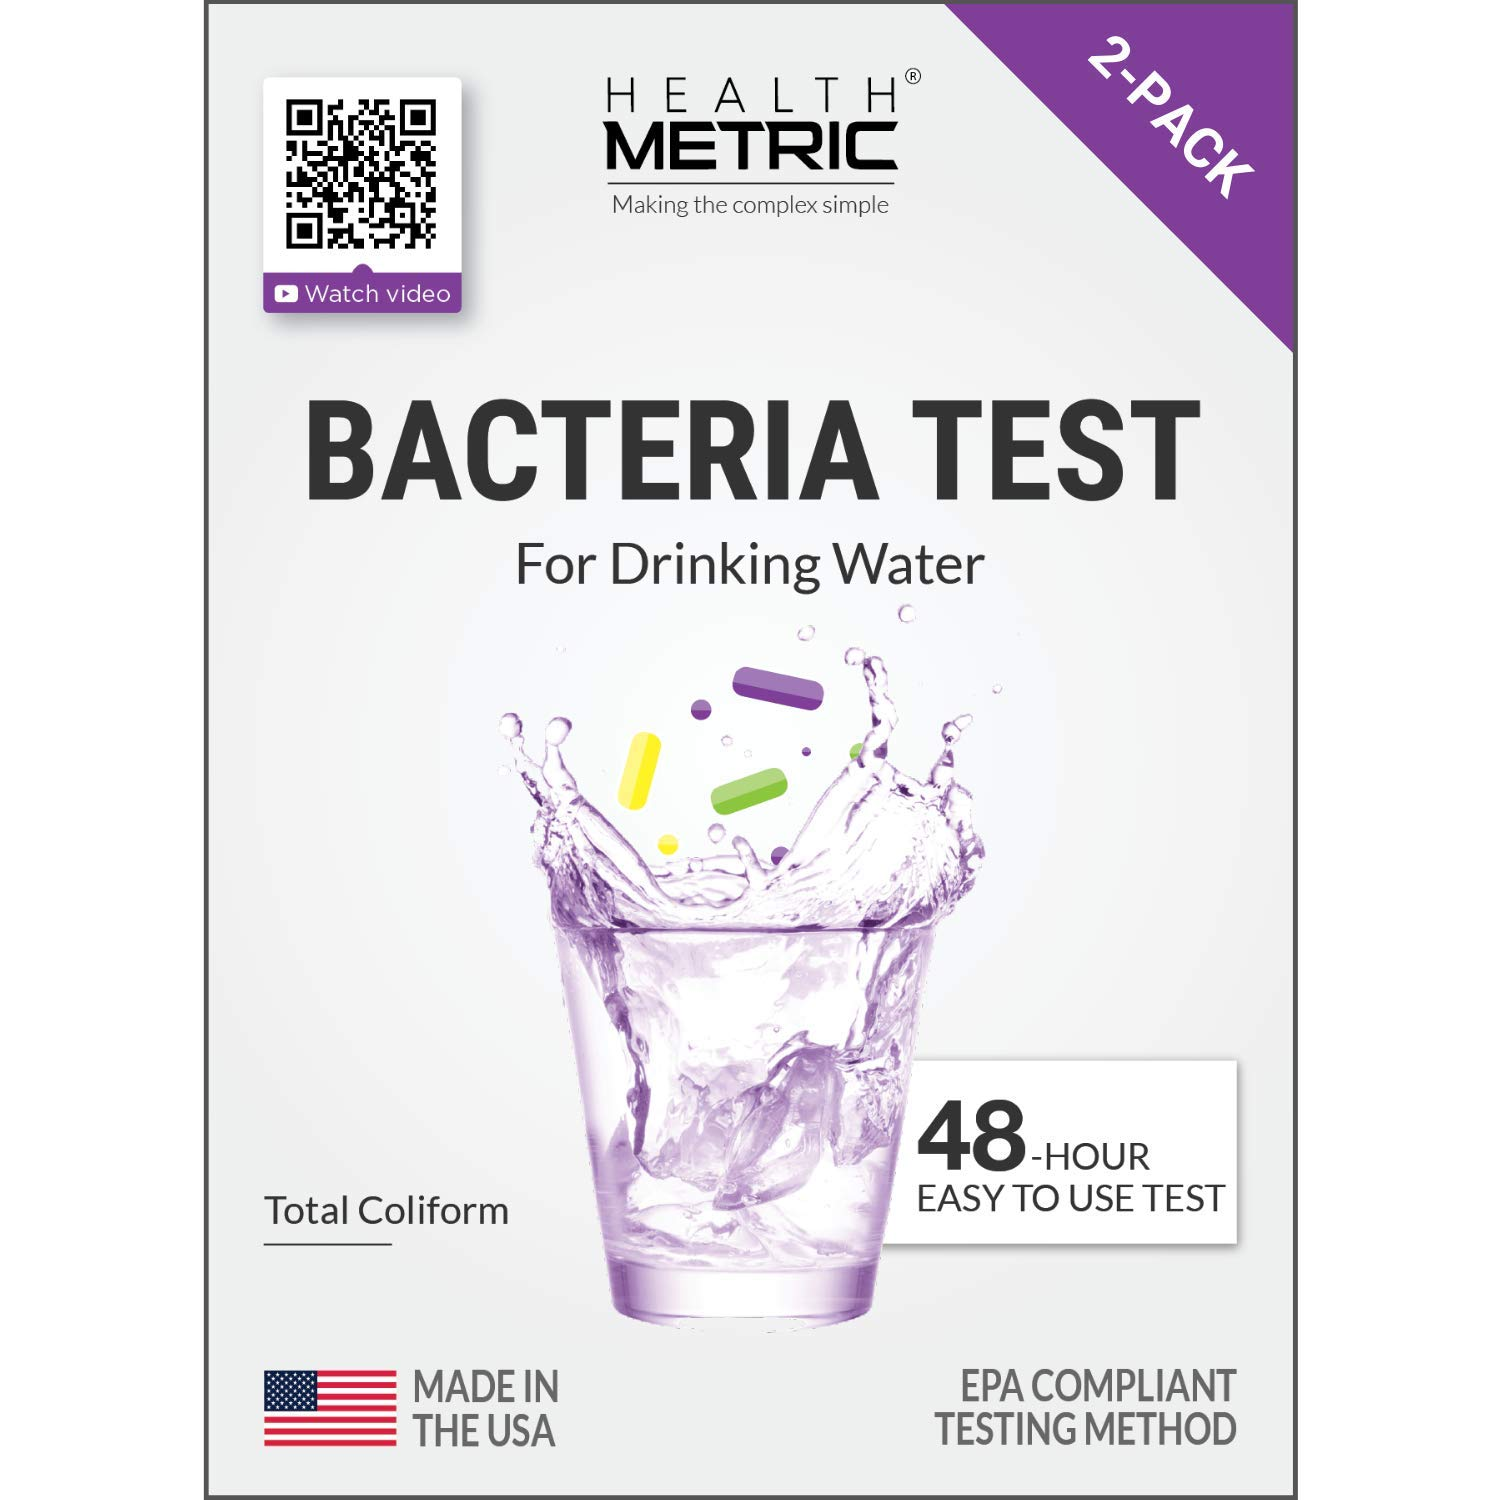 Coliform Bacteria Test Kit for Drinking Water - Easy to Use 48-Hour Water Quality Testing Kit for Home Tap & Well Water   EPA Approved Testing Method   Made in The USA   Incl. E Coli   2-Pack by Health Metric